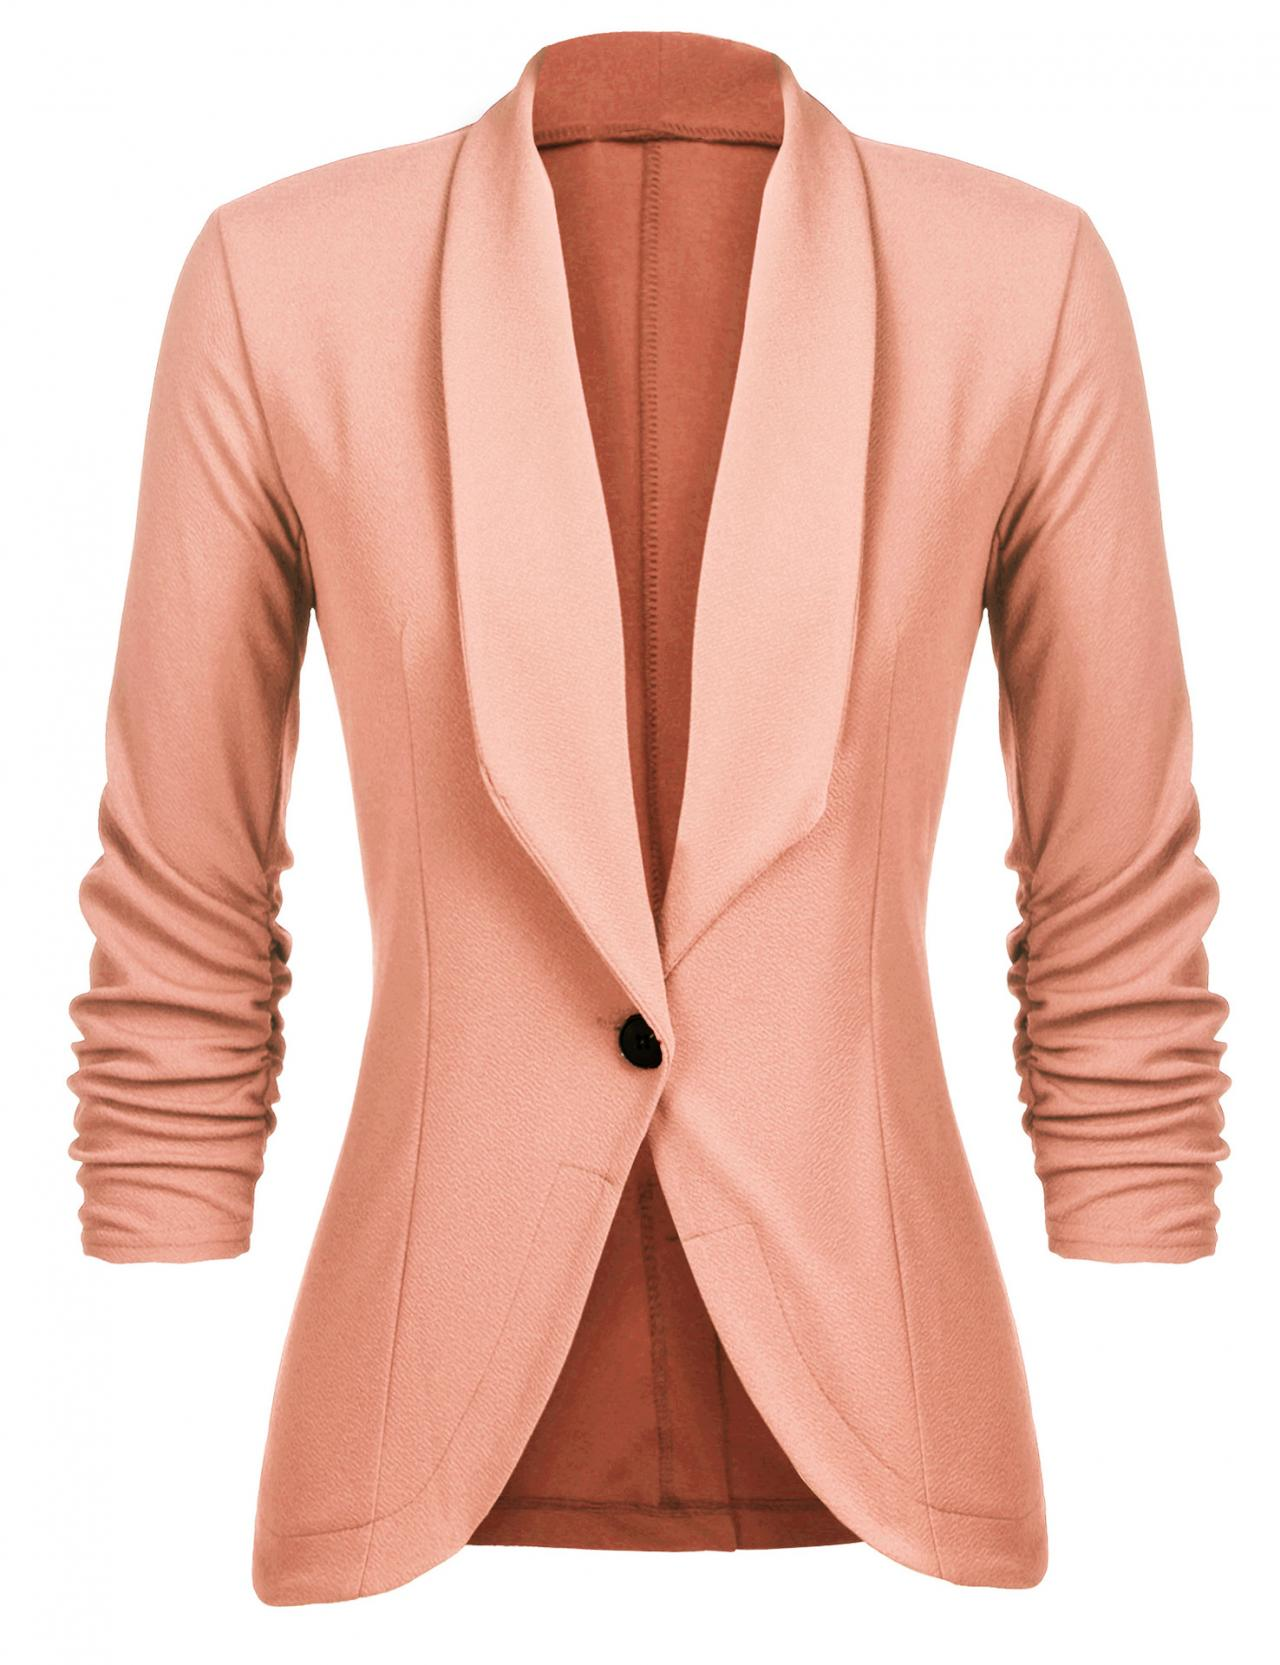 Women Slim Suit Coat 3/4 Sleeve One Button Casual Office Business Blazer Jacket Outwear salmon